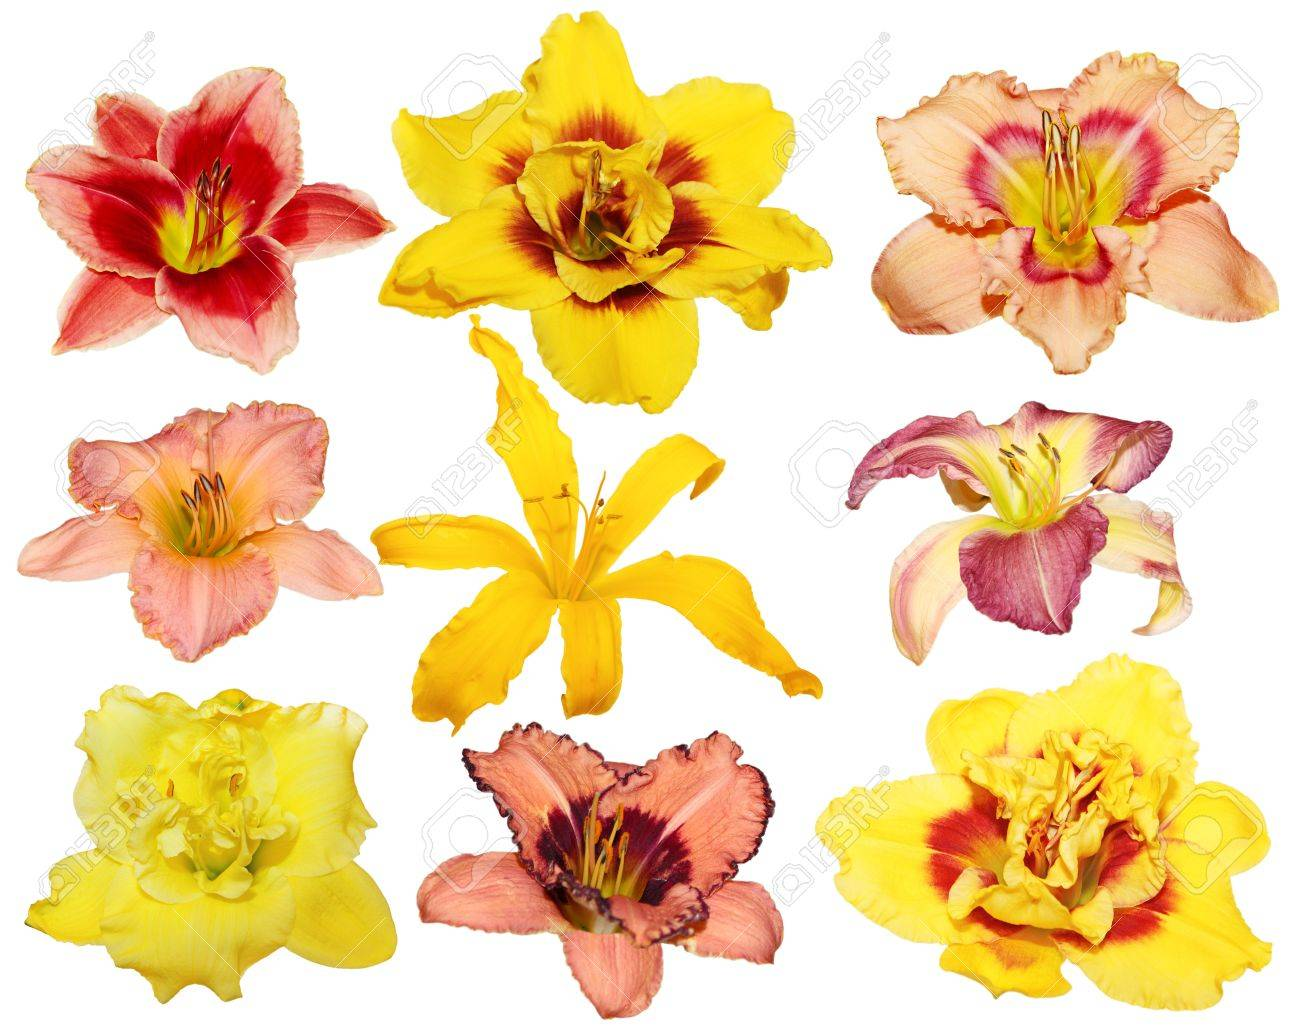 Collection of nine different day lily flower heads isolated on collection of nine different day lily flower heads isolated on white background stock photo 11548721 izmirmasajfo Image collections